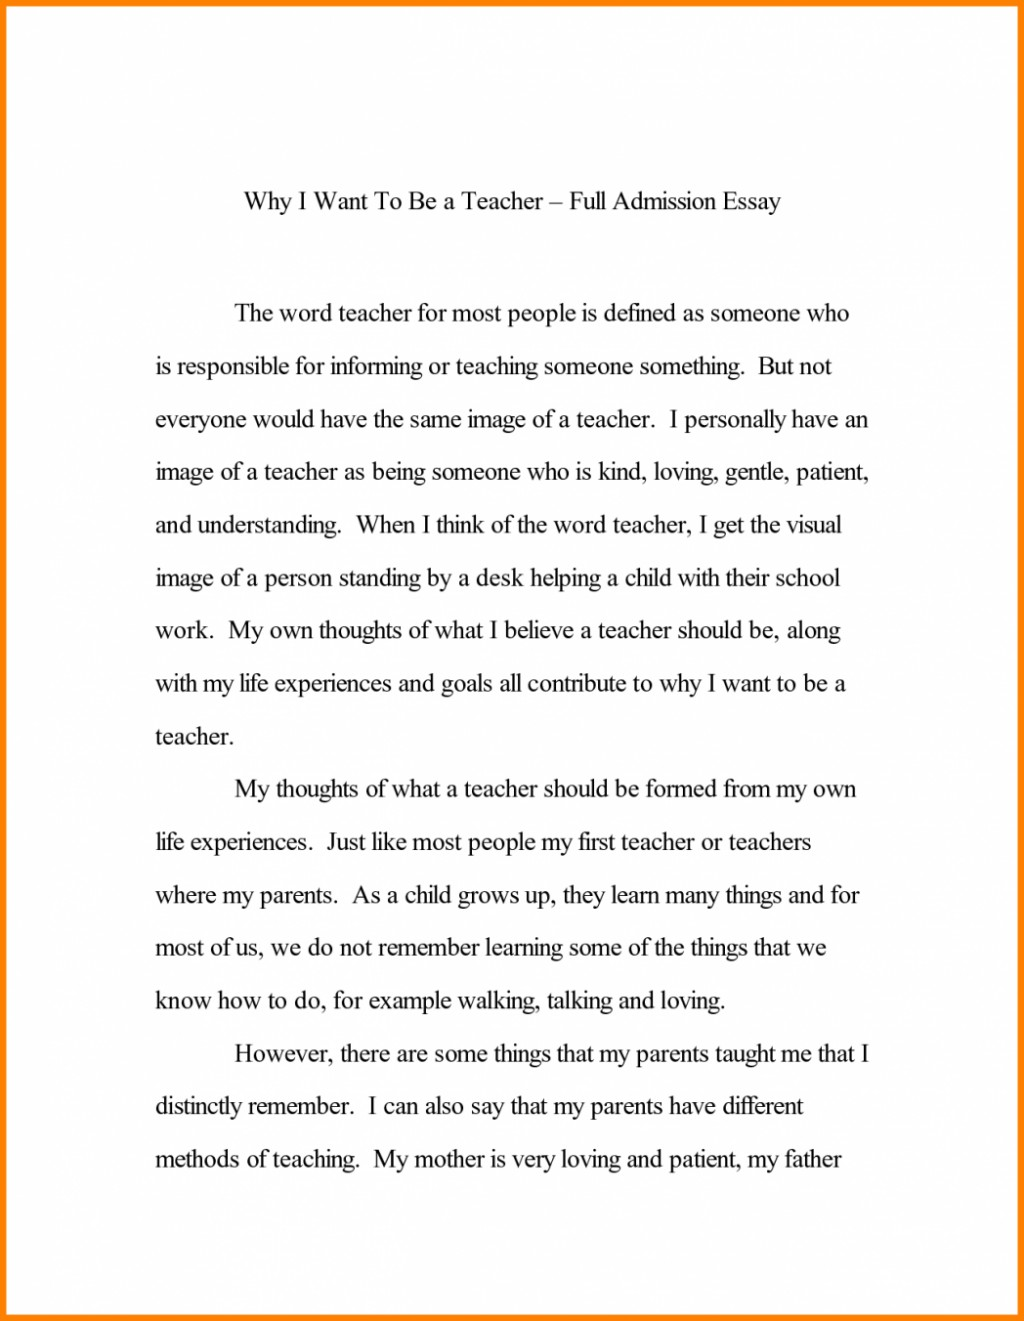 018 Common App Example Essays That Worked Application College Essay Sample For Guidelines Unique Best Samples Option 1 Prompt 2016 2017 Large